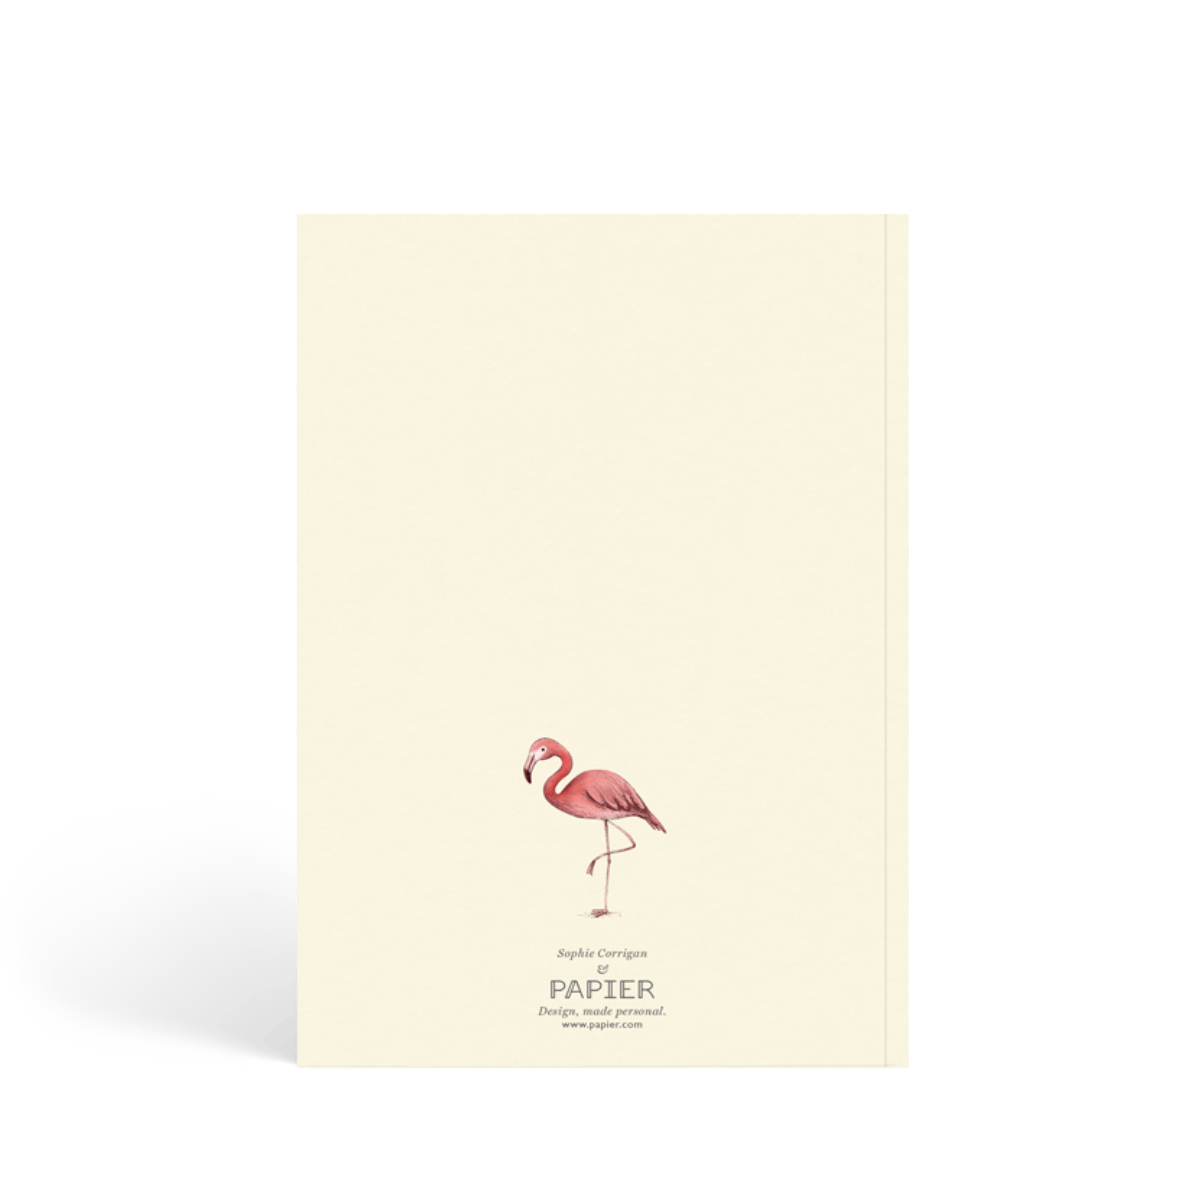 Https%3a%2f%2fwww.papier.com%2fproduct image%2f14635%2f5%2fanatomy of a flamingo 3898 arriere 1480675937.png?ixlib=rb 1.1